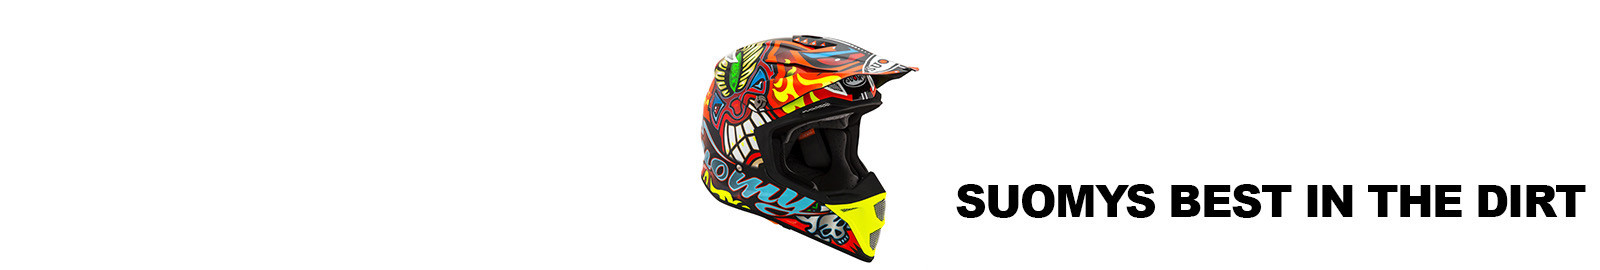 Suomy MX Speed Helmets